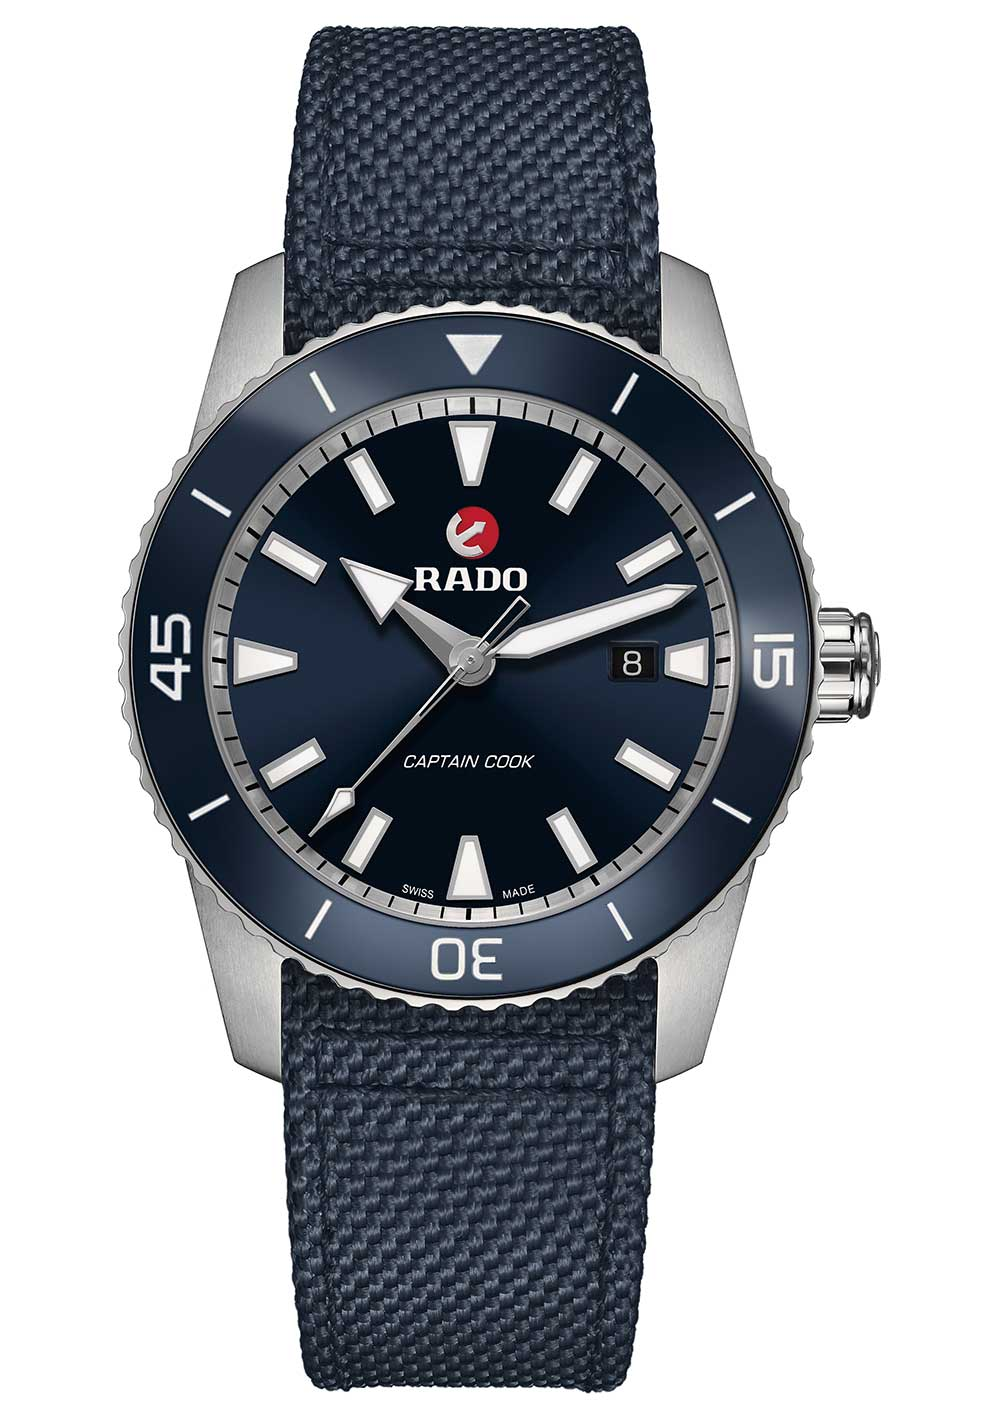 Rado HyperChrome Captain Cook reference 763.0501.3.220